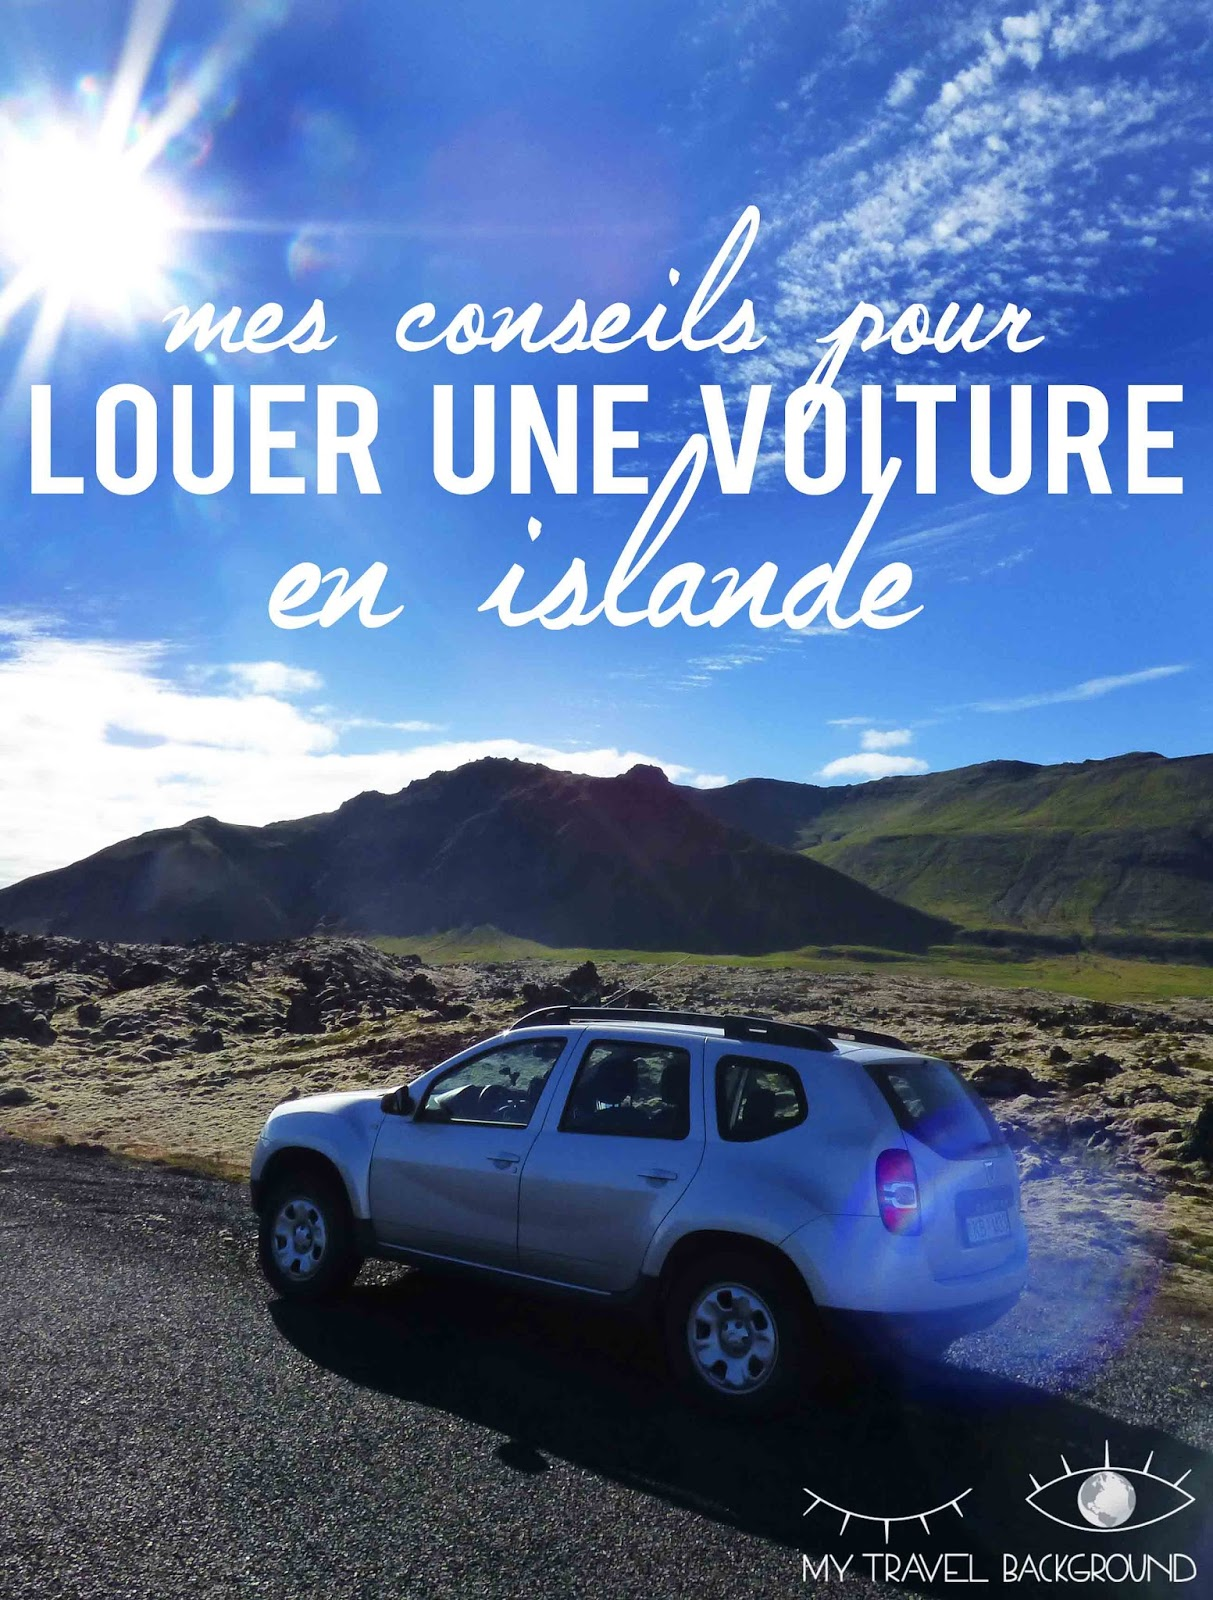 My Travel Background : mes conseils pour louer une voiture en Islande - Pint it !